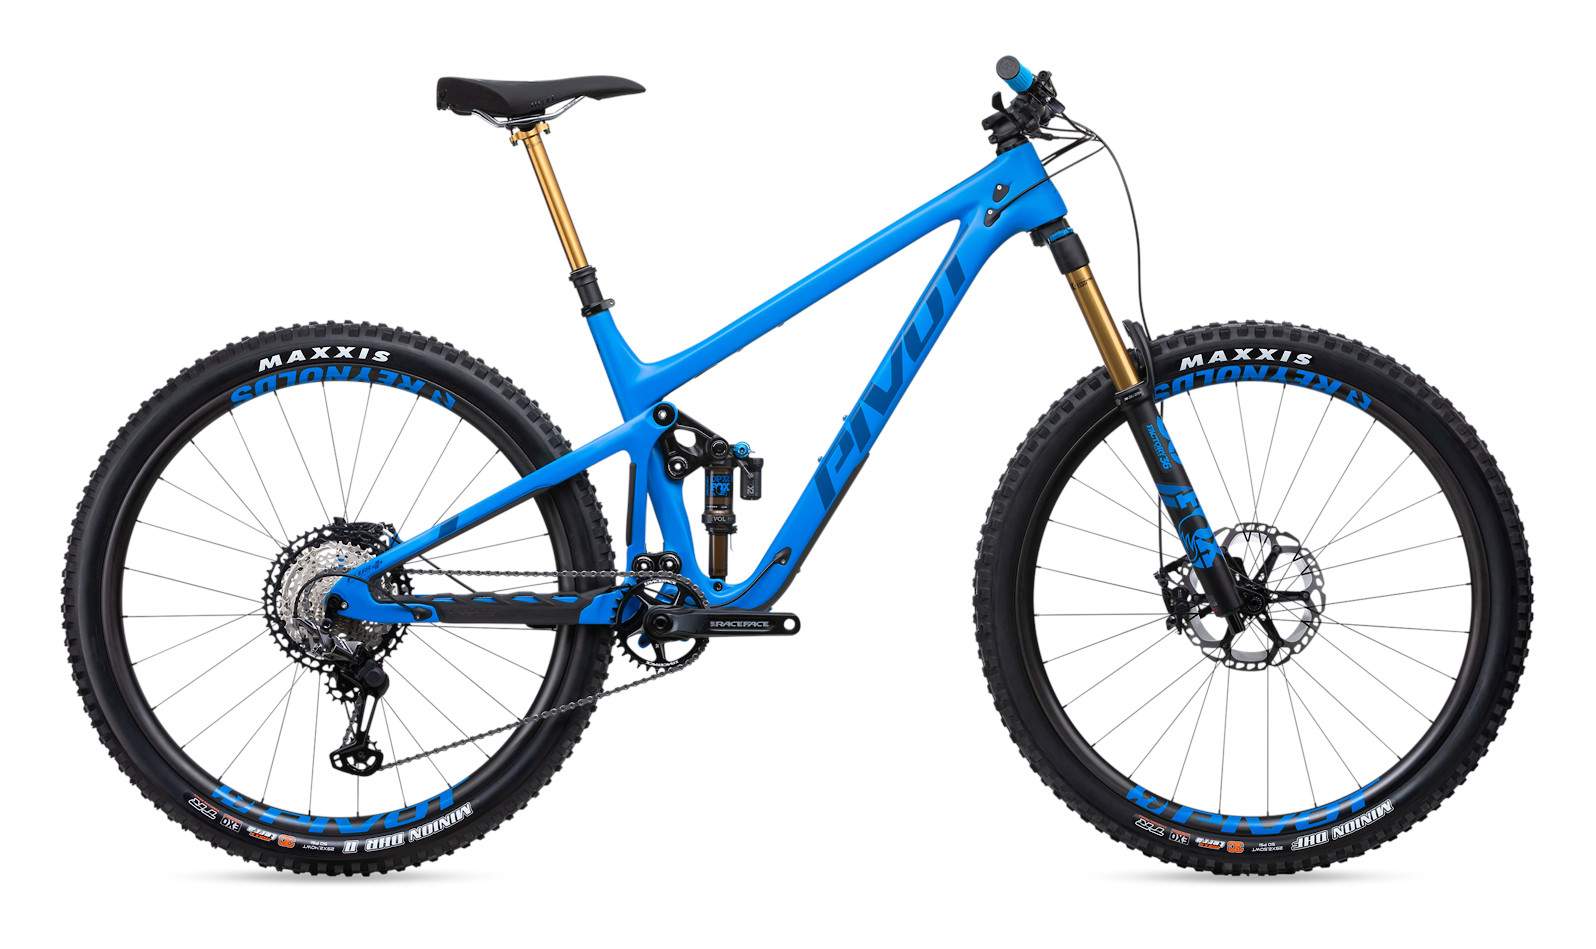 2020 Pivot Switchblade Pro XT/XTR 29 - Horizon Blue with Reynolds wheels upgrade